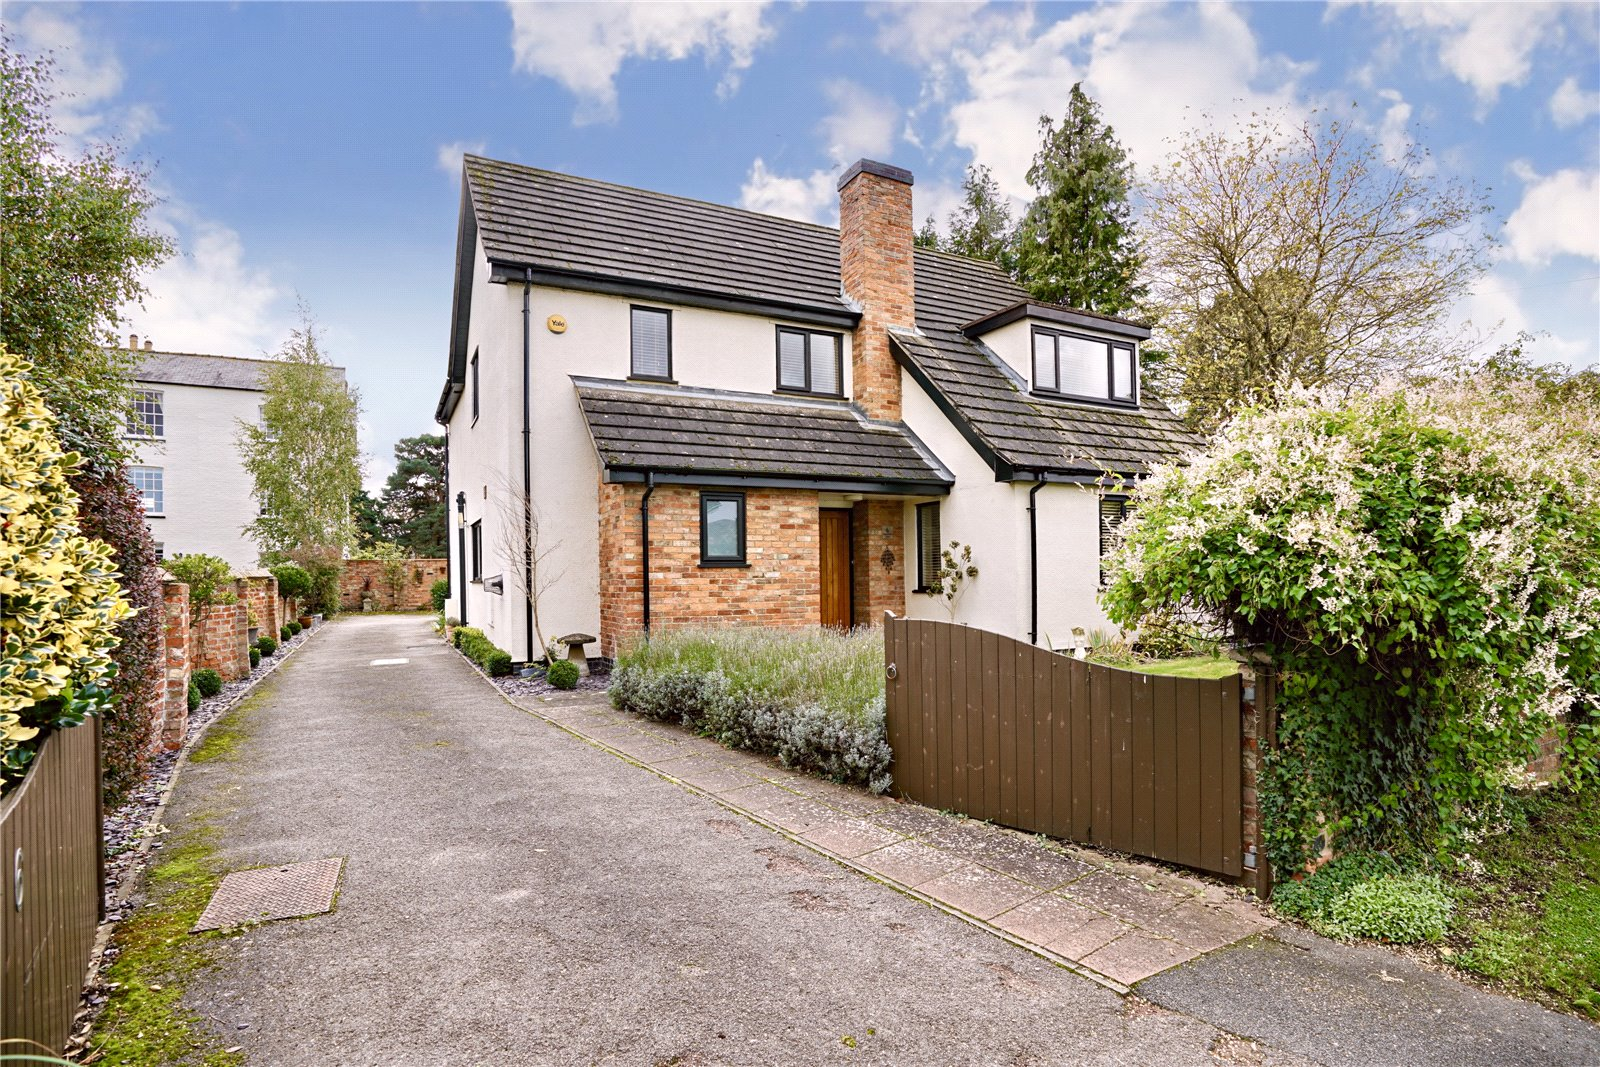 4 bed house for sale in Eaton Socon  - Property Image 2